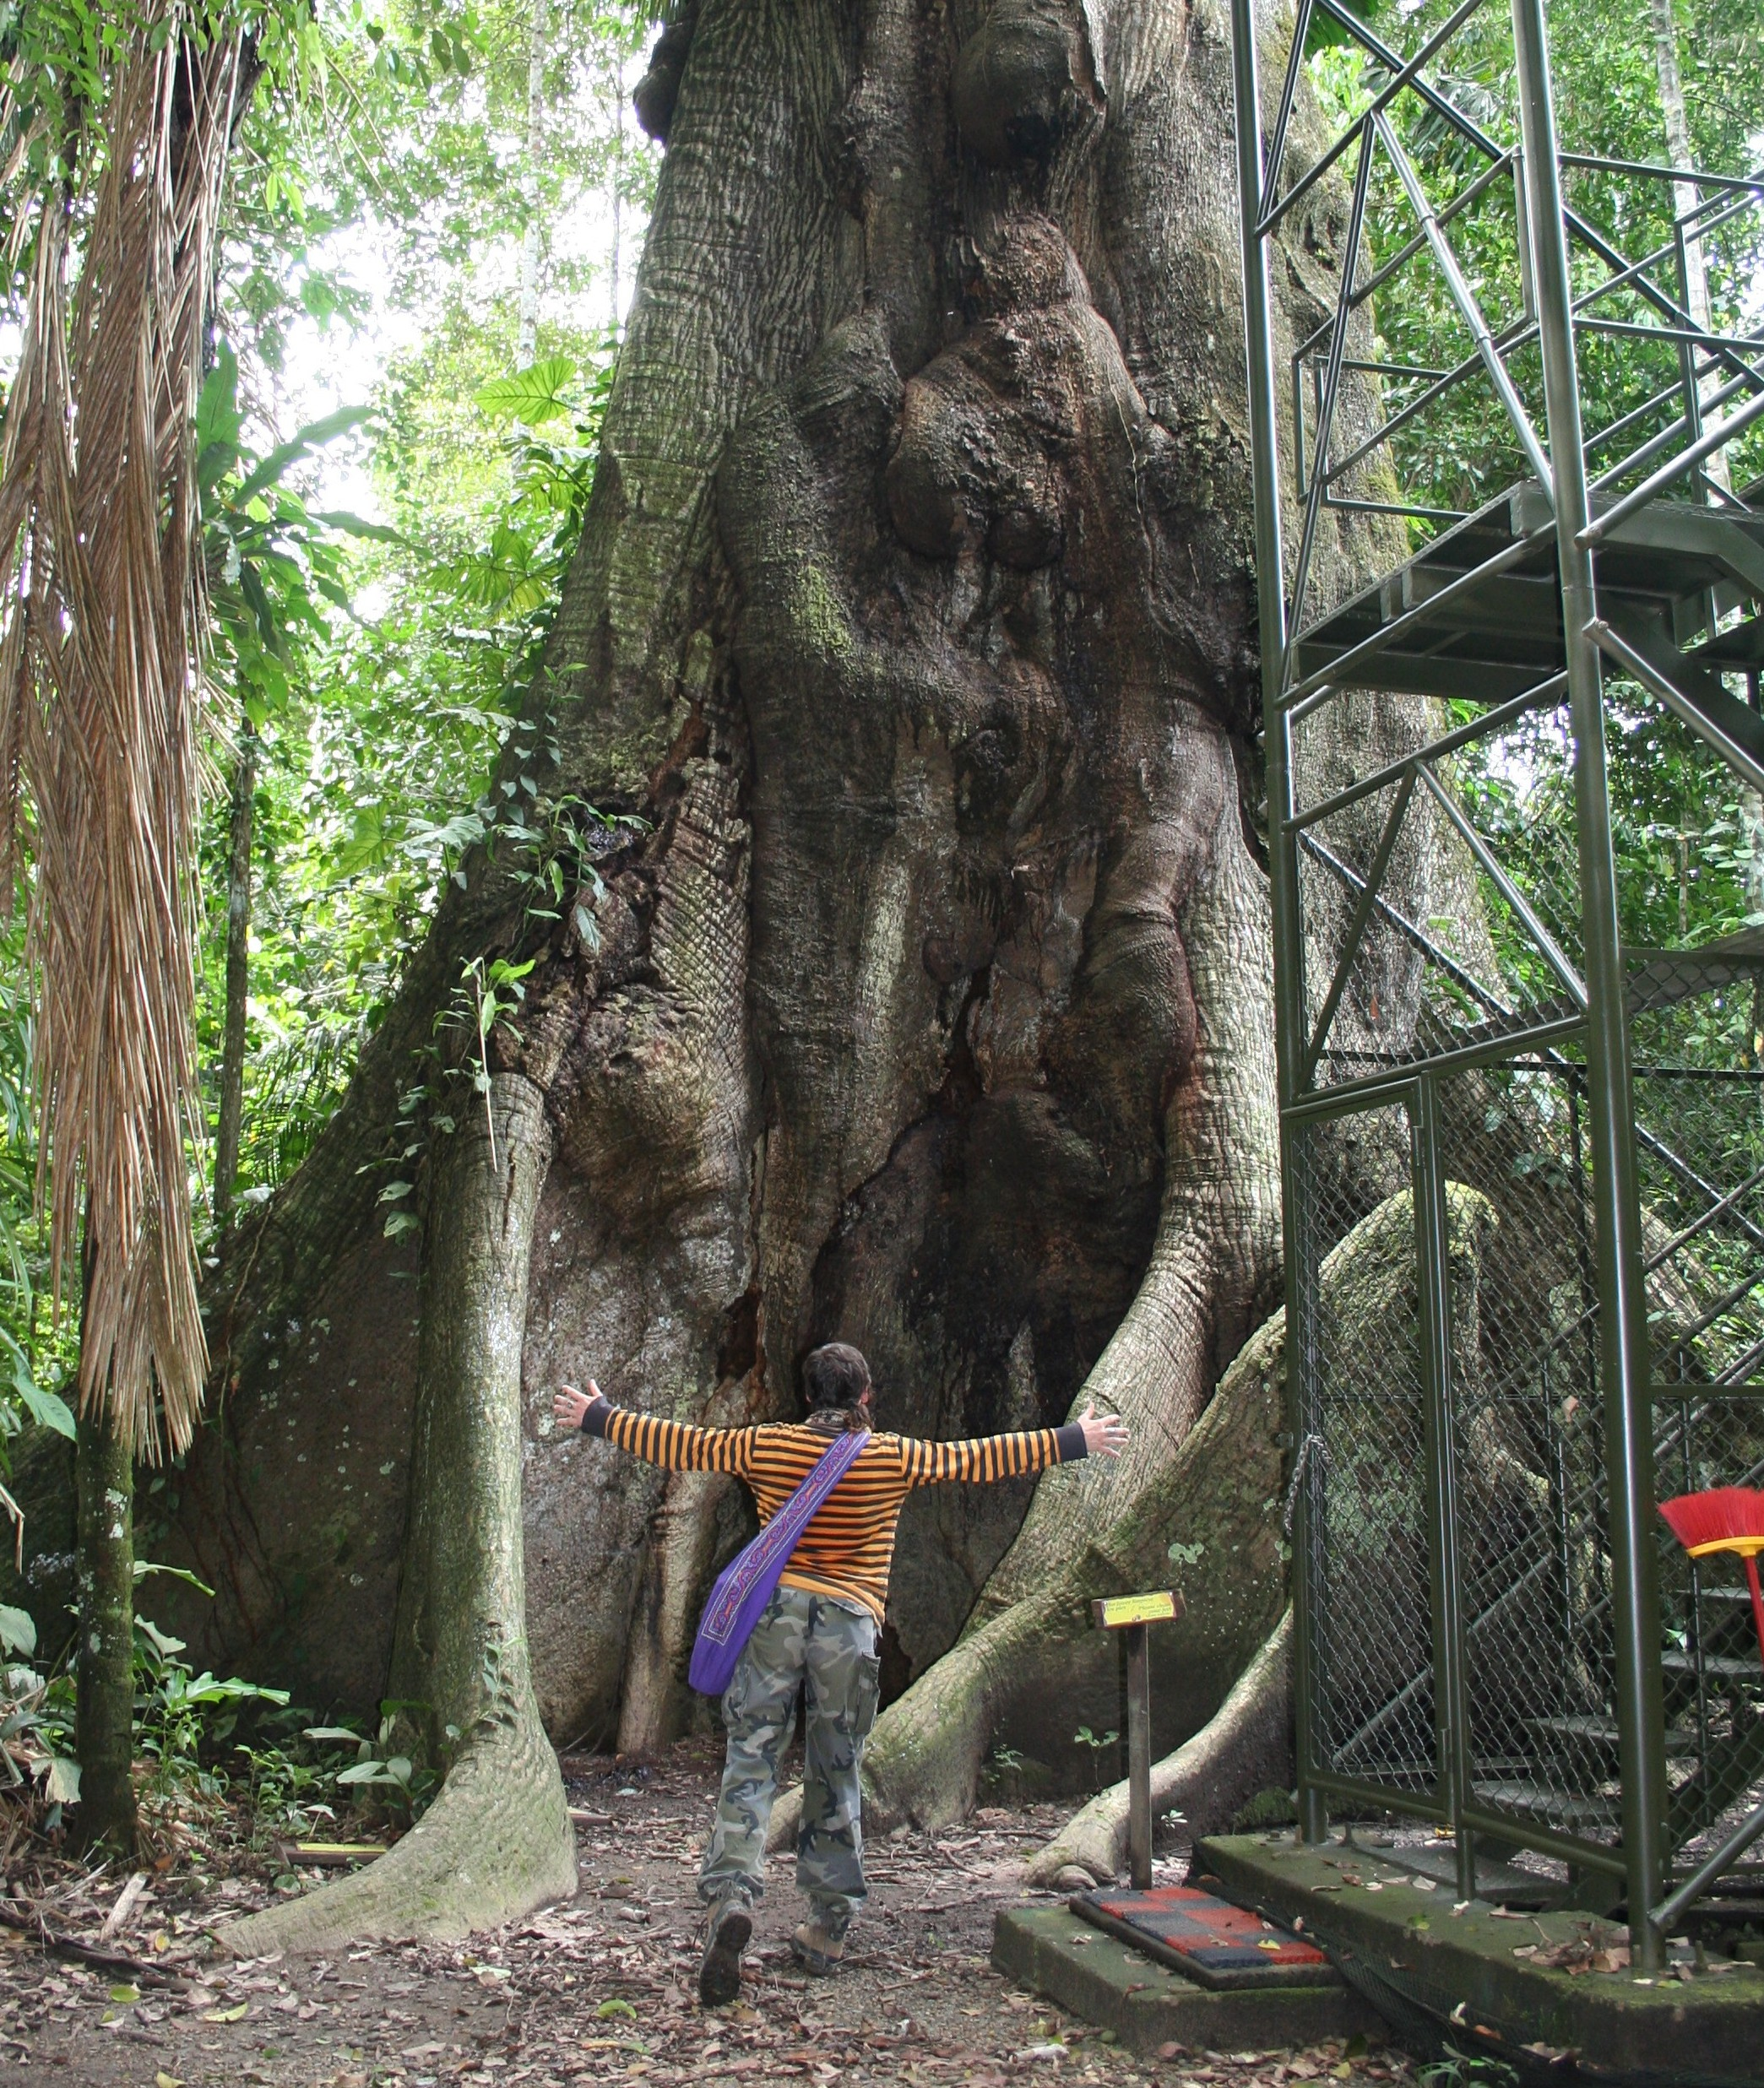 Or ceiba tree with a platform to climb up into the canopy this tree